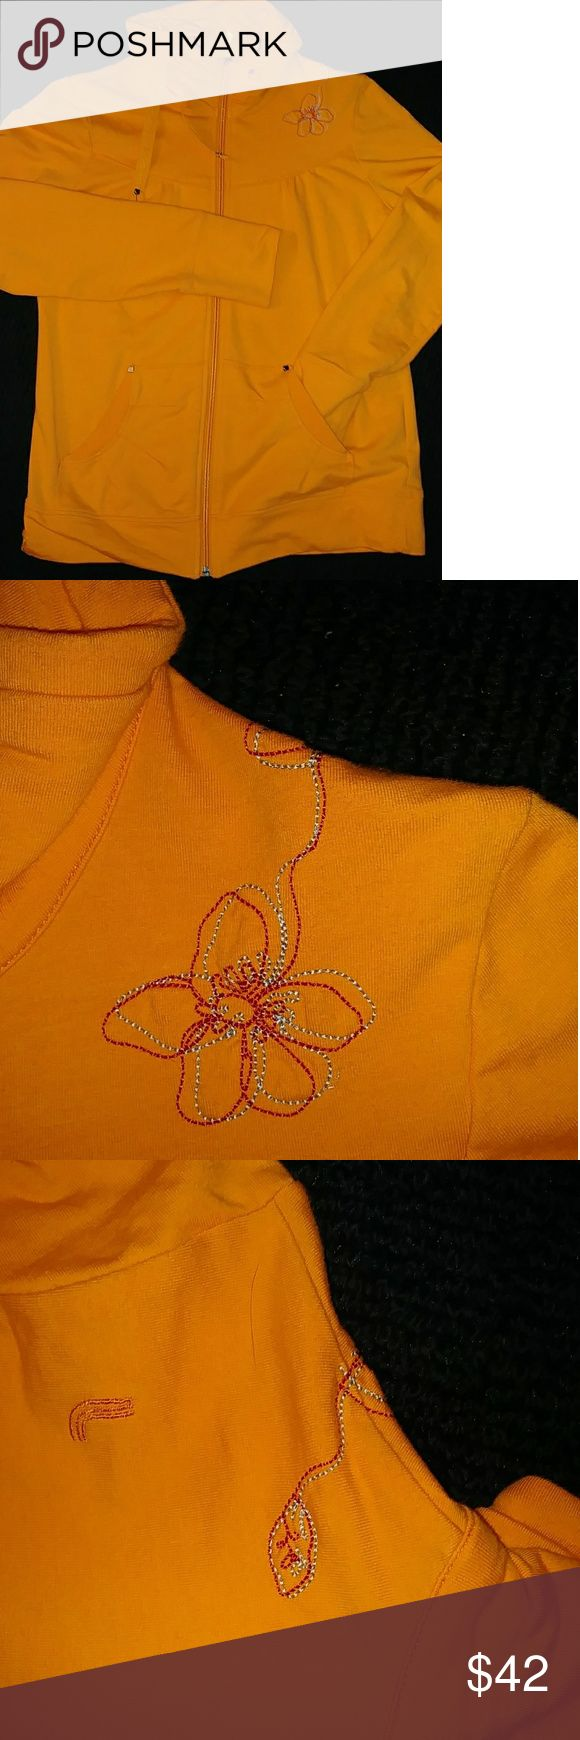 "Lole Organic Zip up Yoga Sweatshirt Worn only Twice. Color still Very Vibrant!! Excellent condition Has Zero Stains!  Organic Cotton Embroidered Zip up Yoga Sweatshirt in Vibrant Orange by ""Lole"". Some Ruching thtoughout. Looks very Cute with a Dark wash Skinny Jean and Flats!! Lole Tops Sweatshirts & Hoodies"